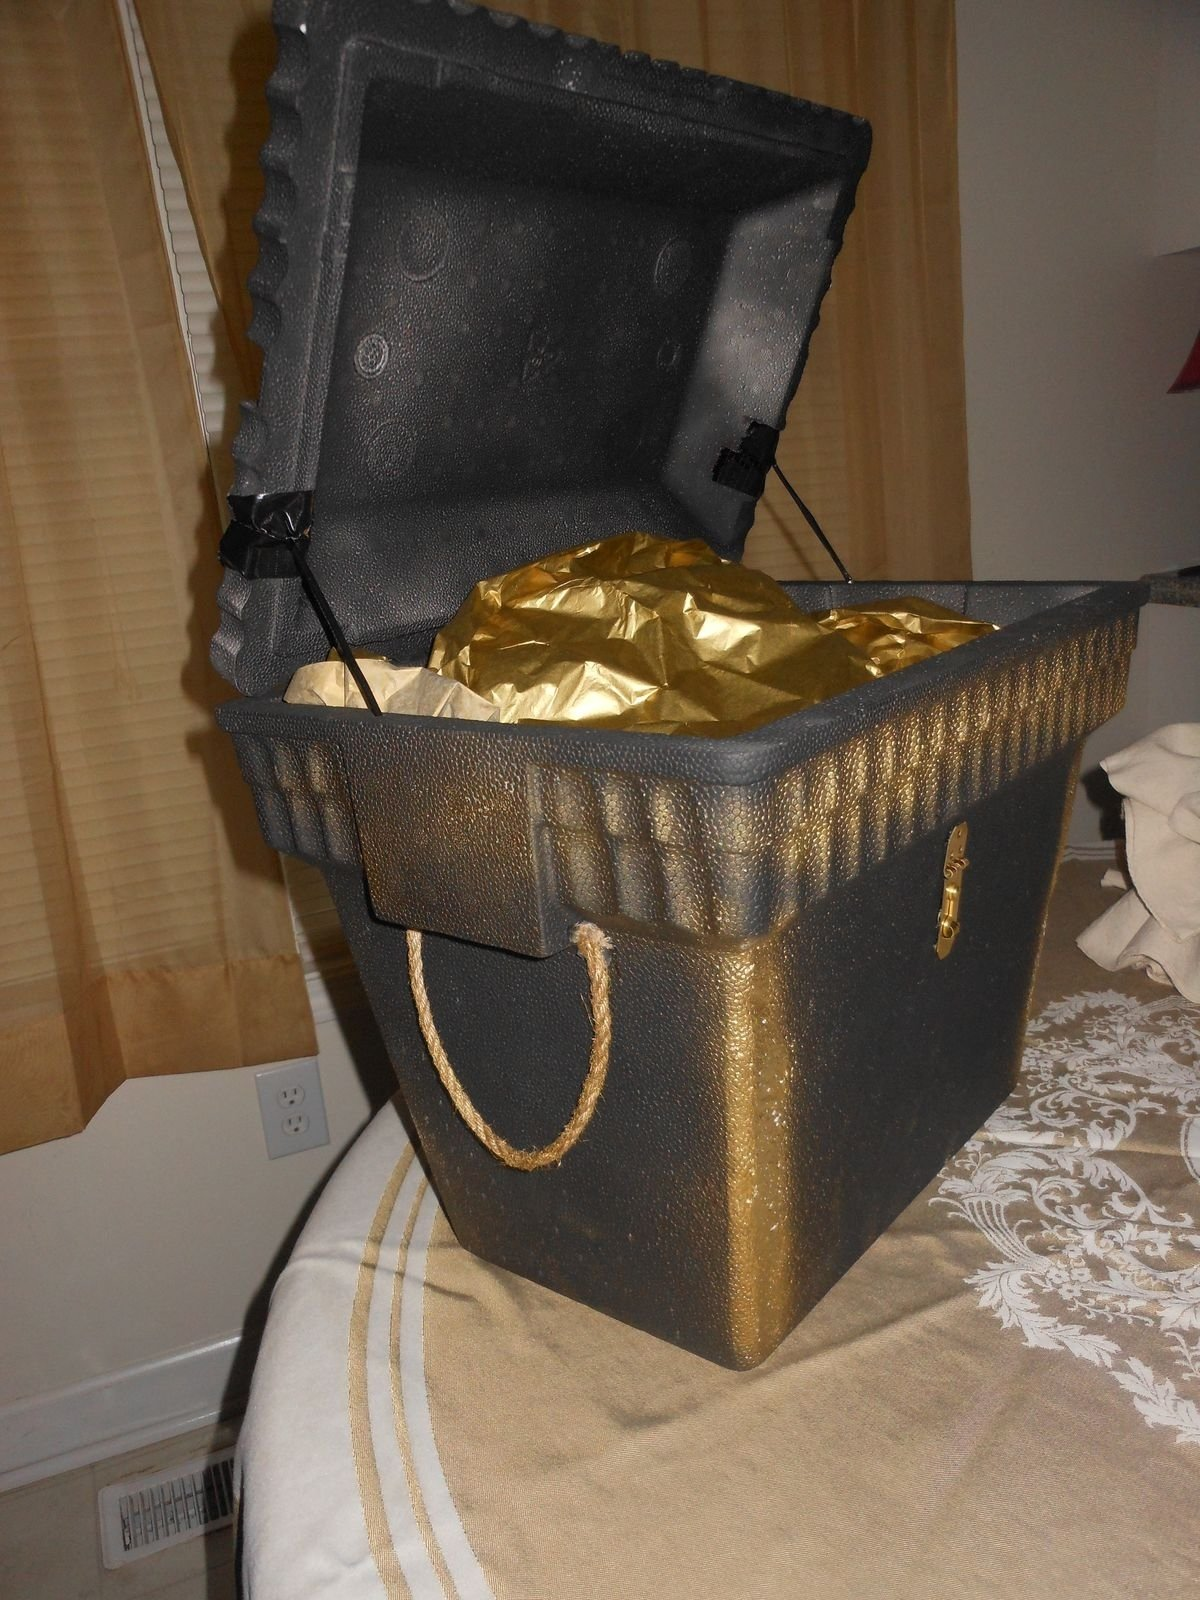 10 Stunning Pirate Party Ideas For Adults side view of pirate chest pirate theme party pinterest pirate 2020